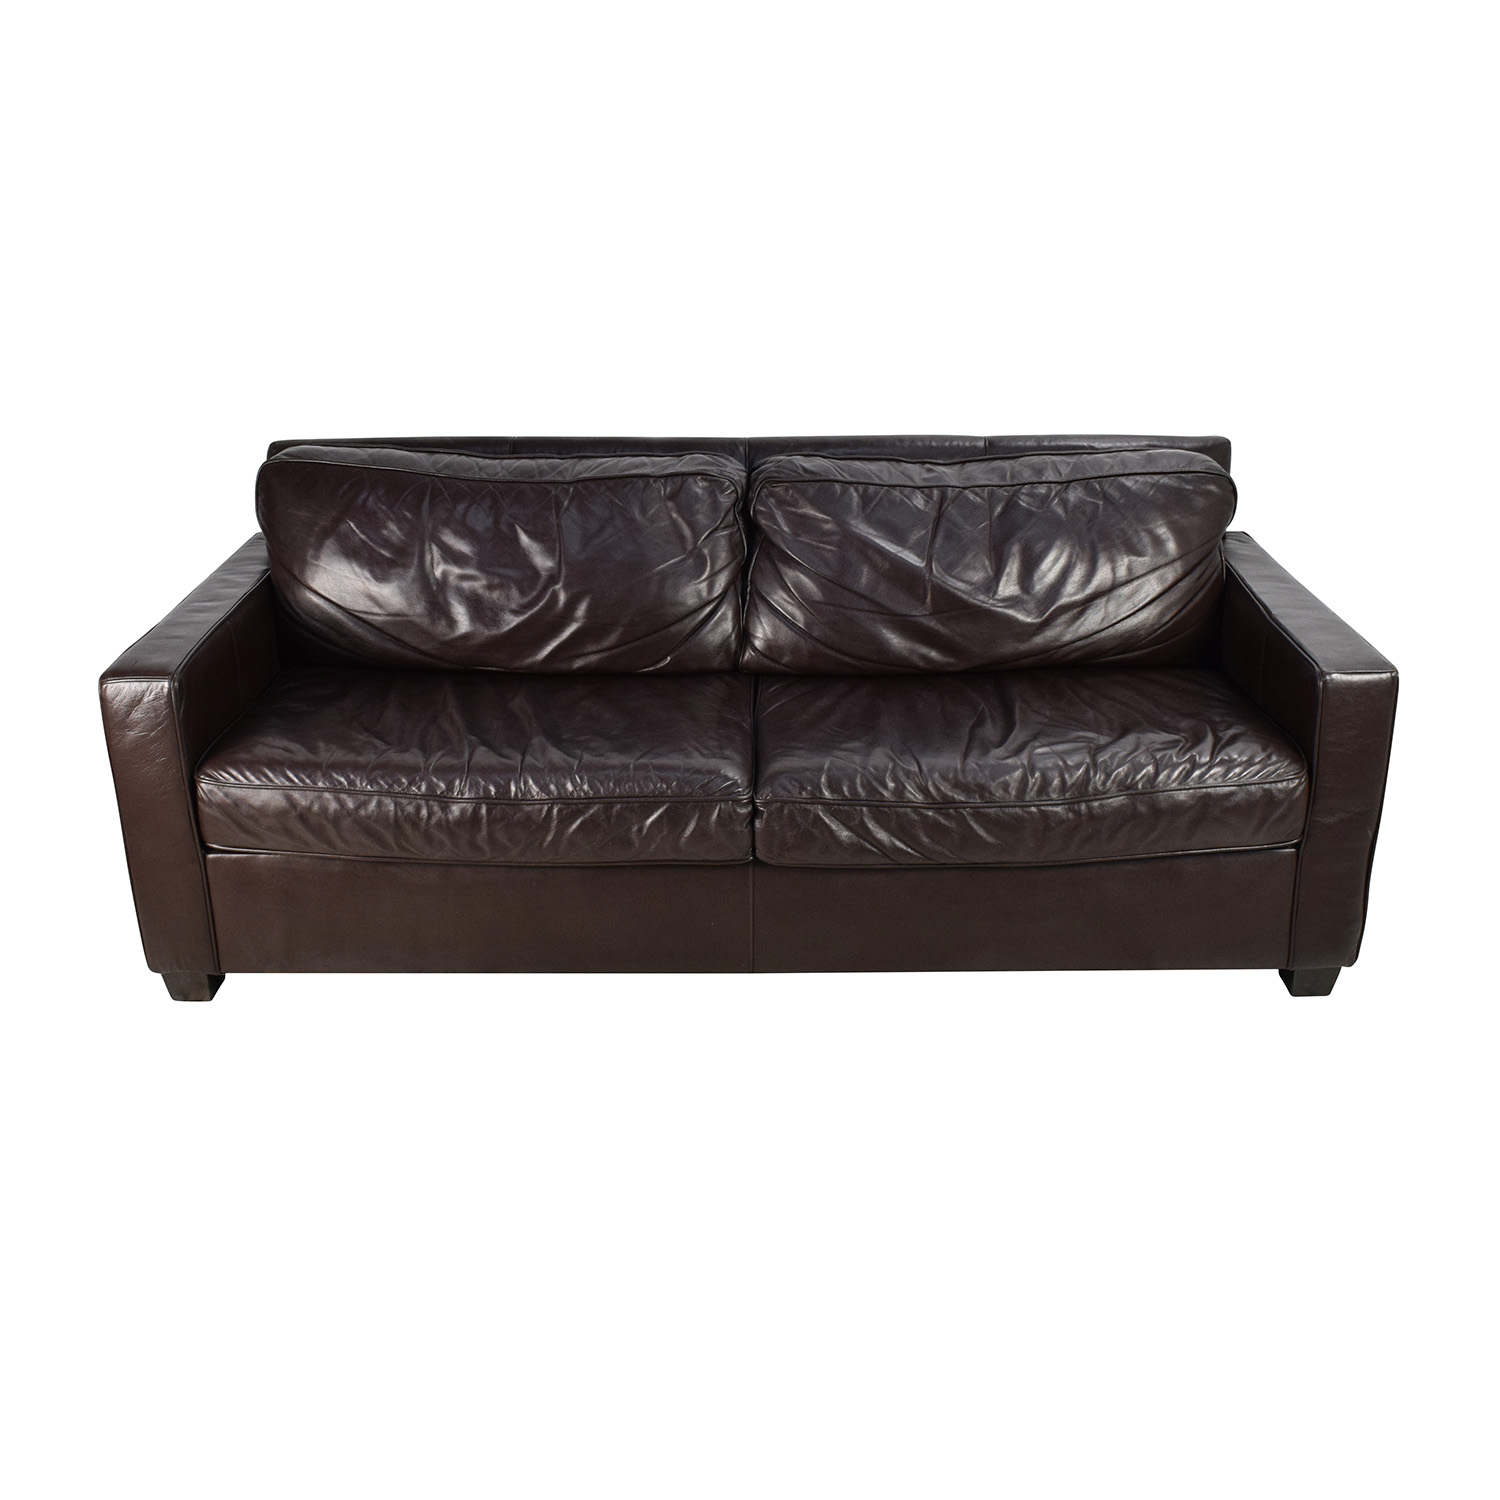 ... West Elm West Elm Henry Leather Sofa Brown Leather ...